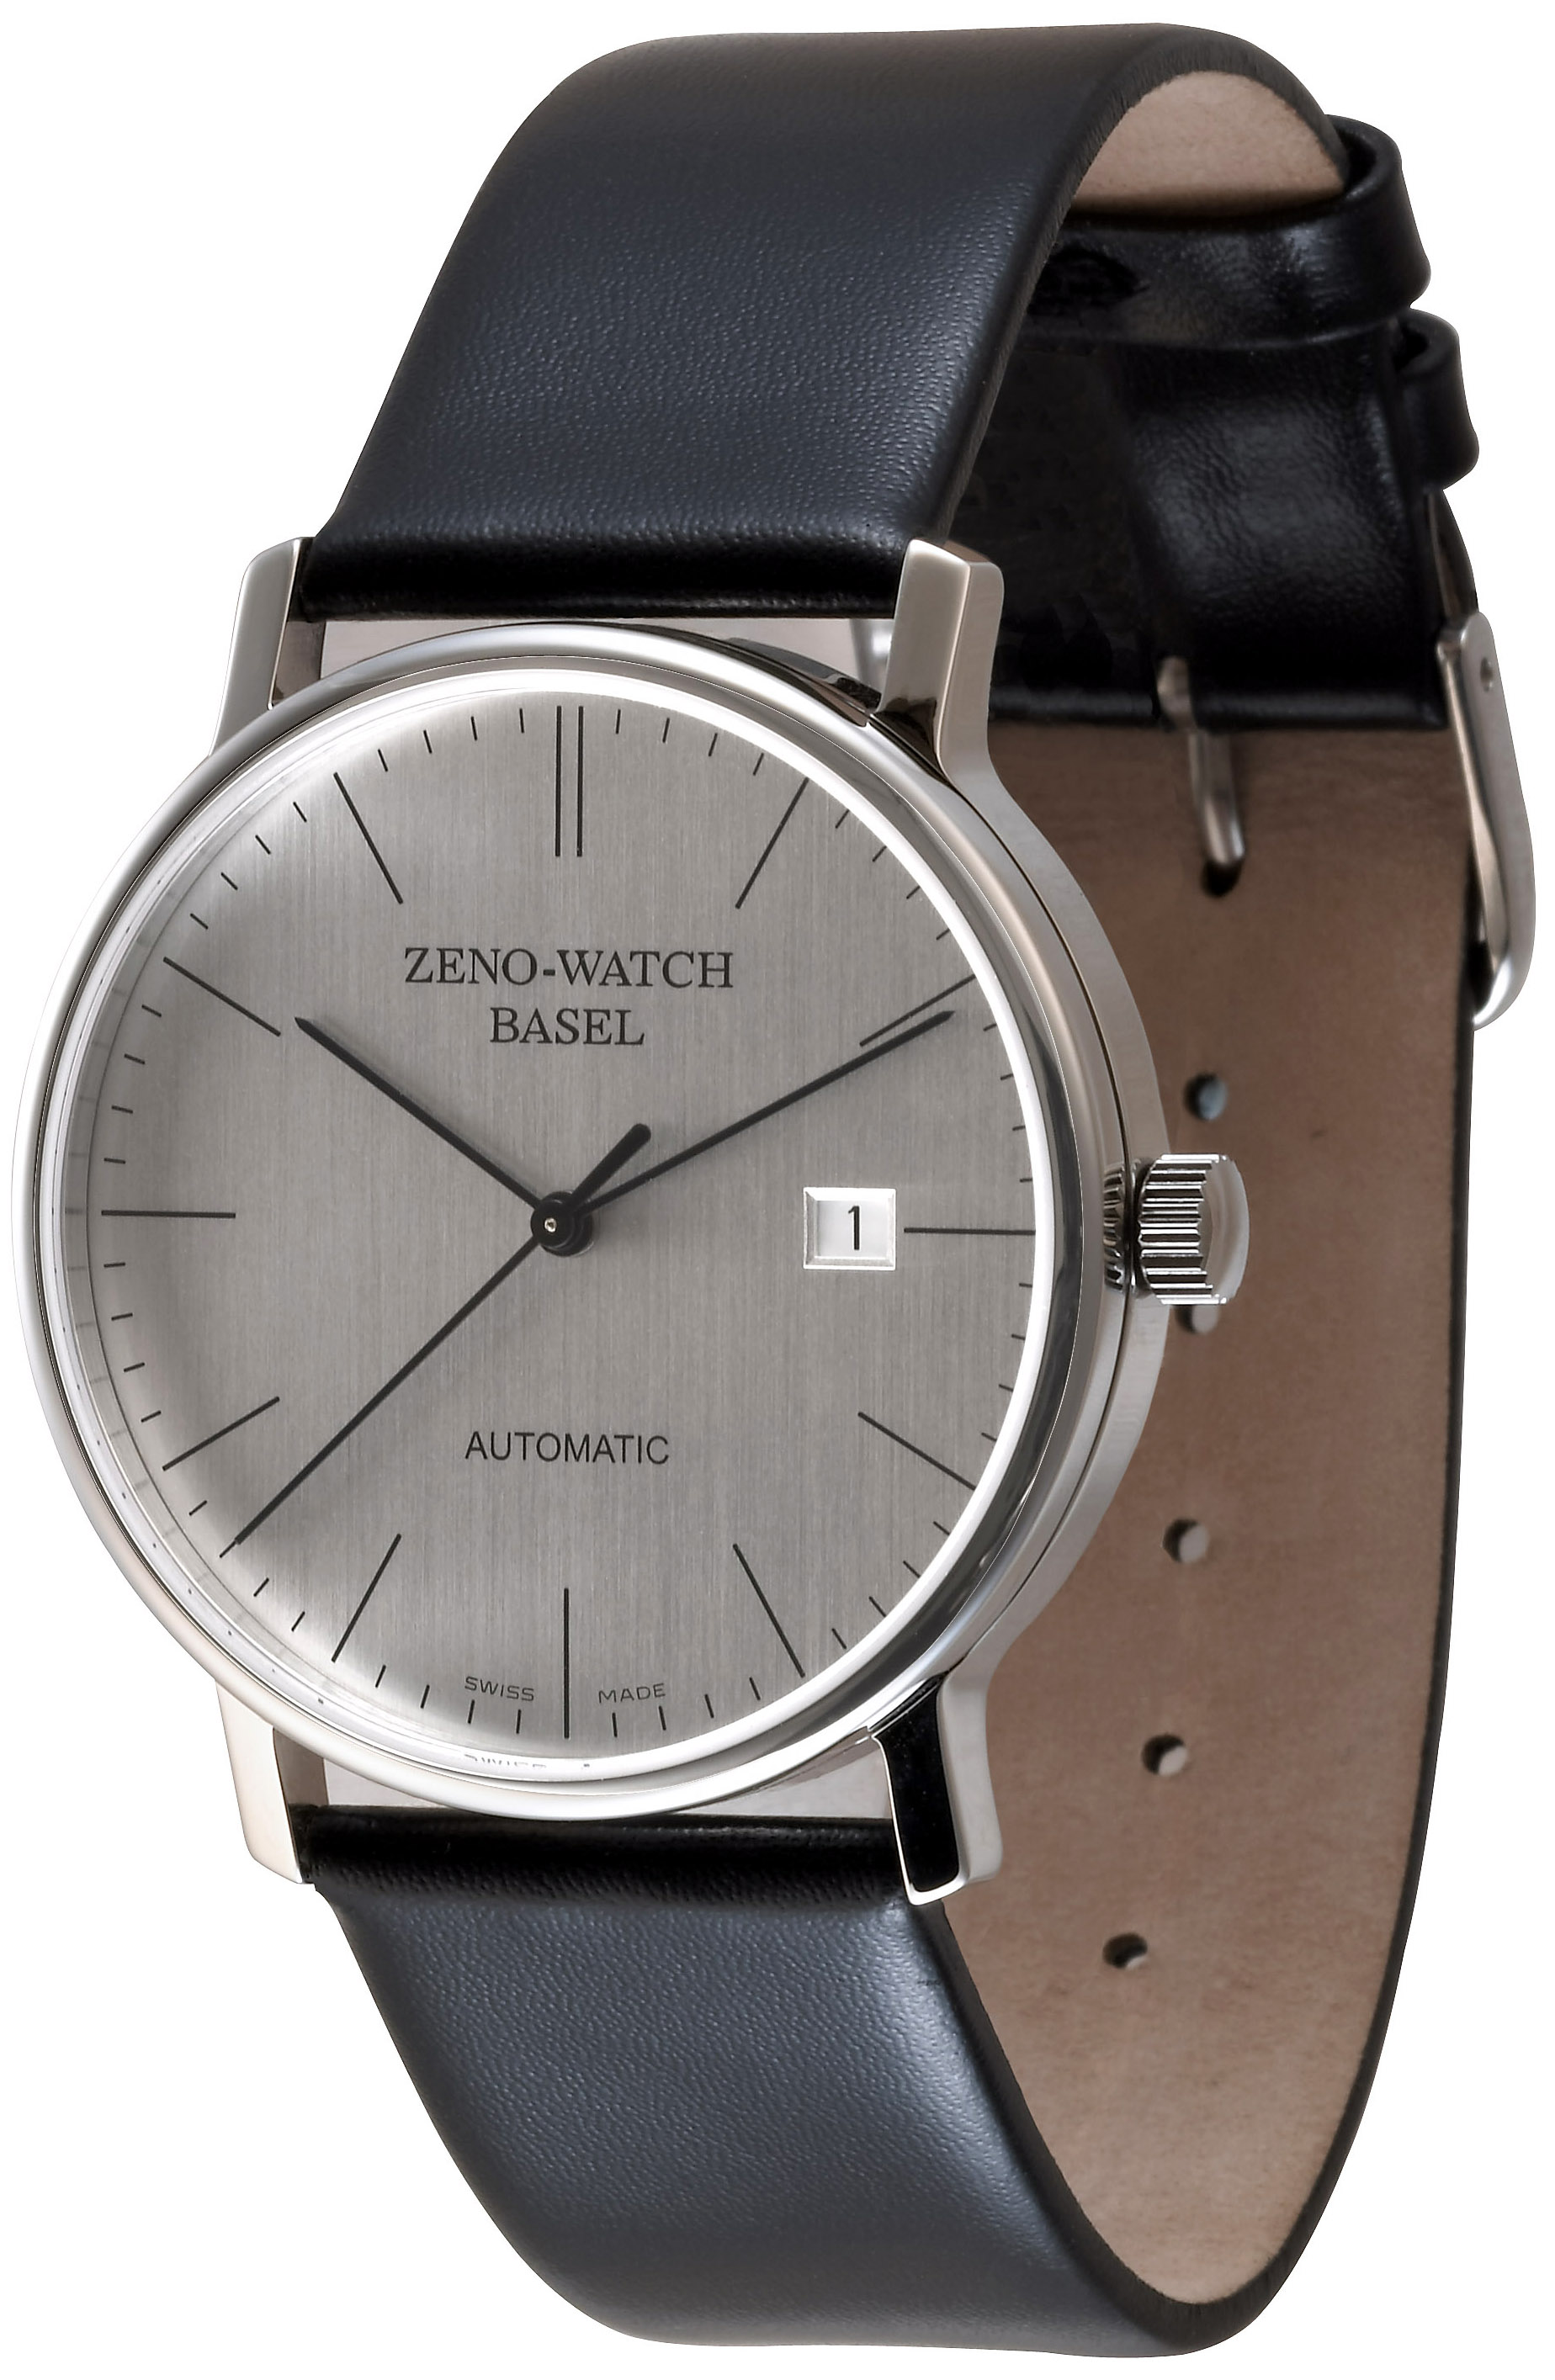 style comments watches r juiujzu of classic bauhaus summary